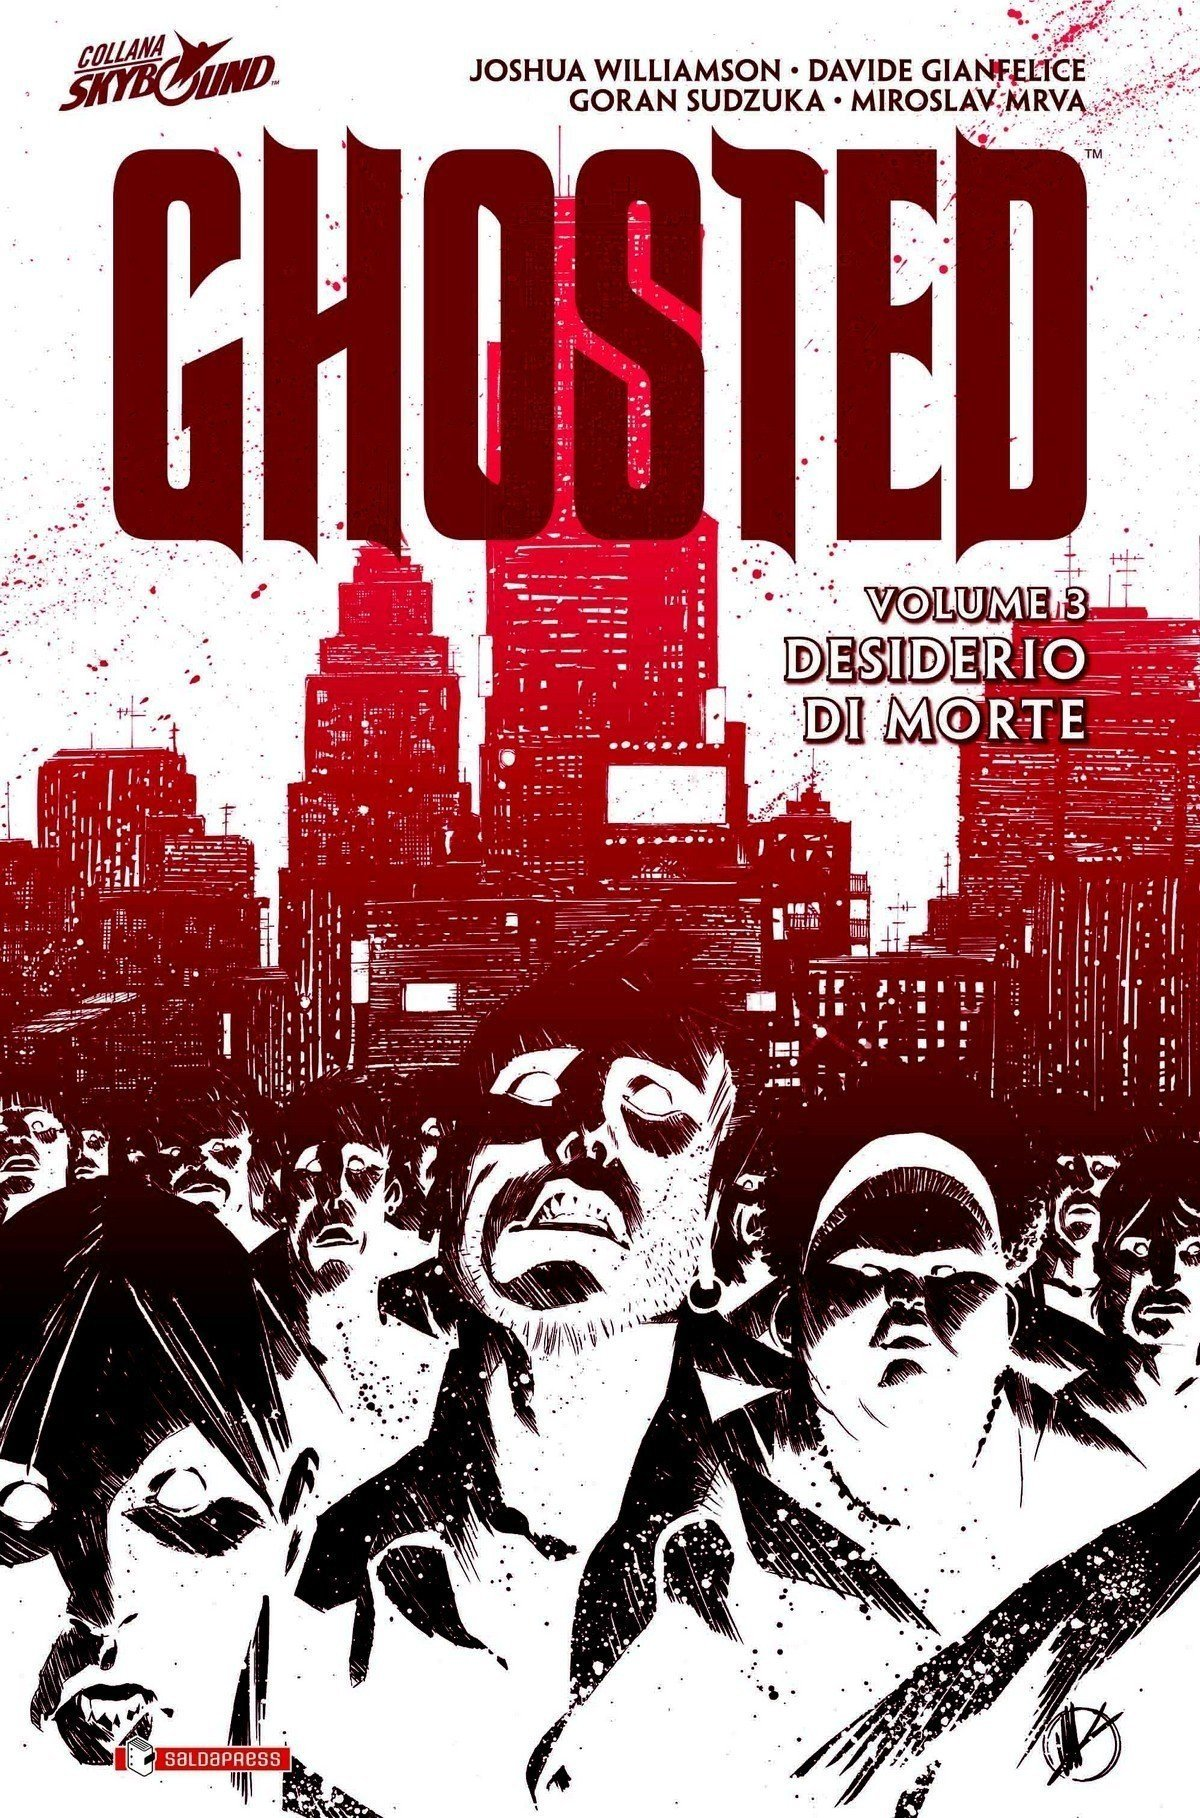 Ghosted_Vol3_cover_HiRes